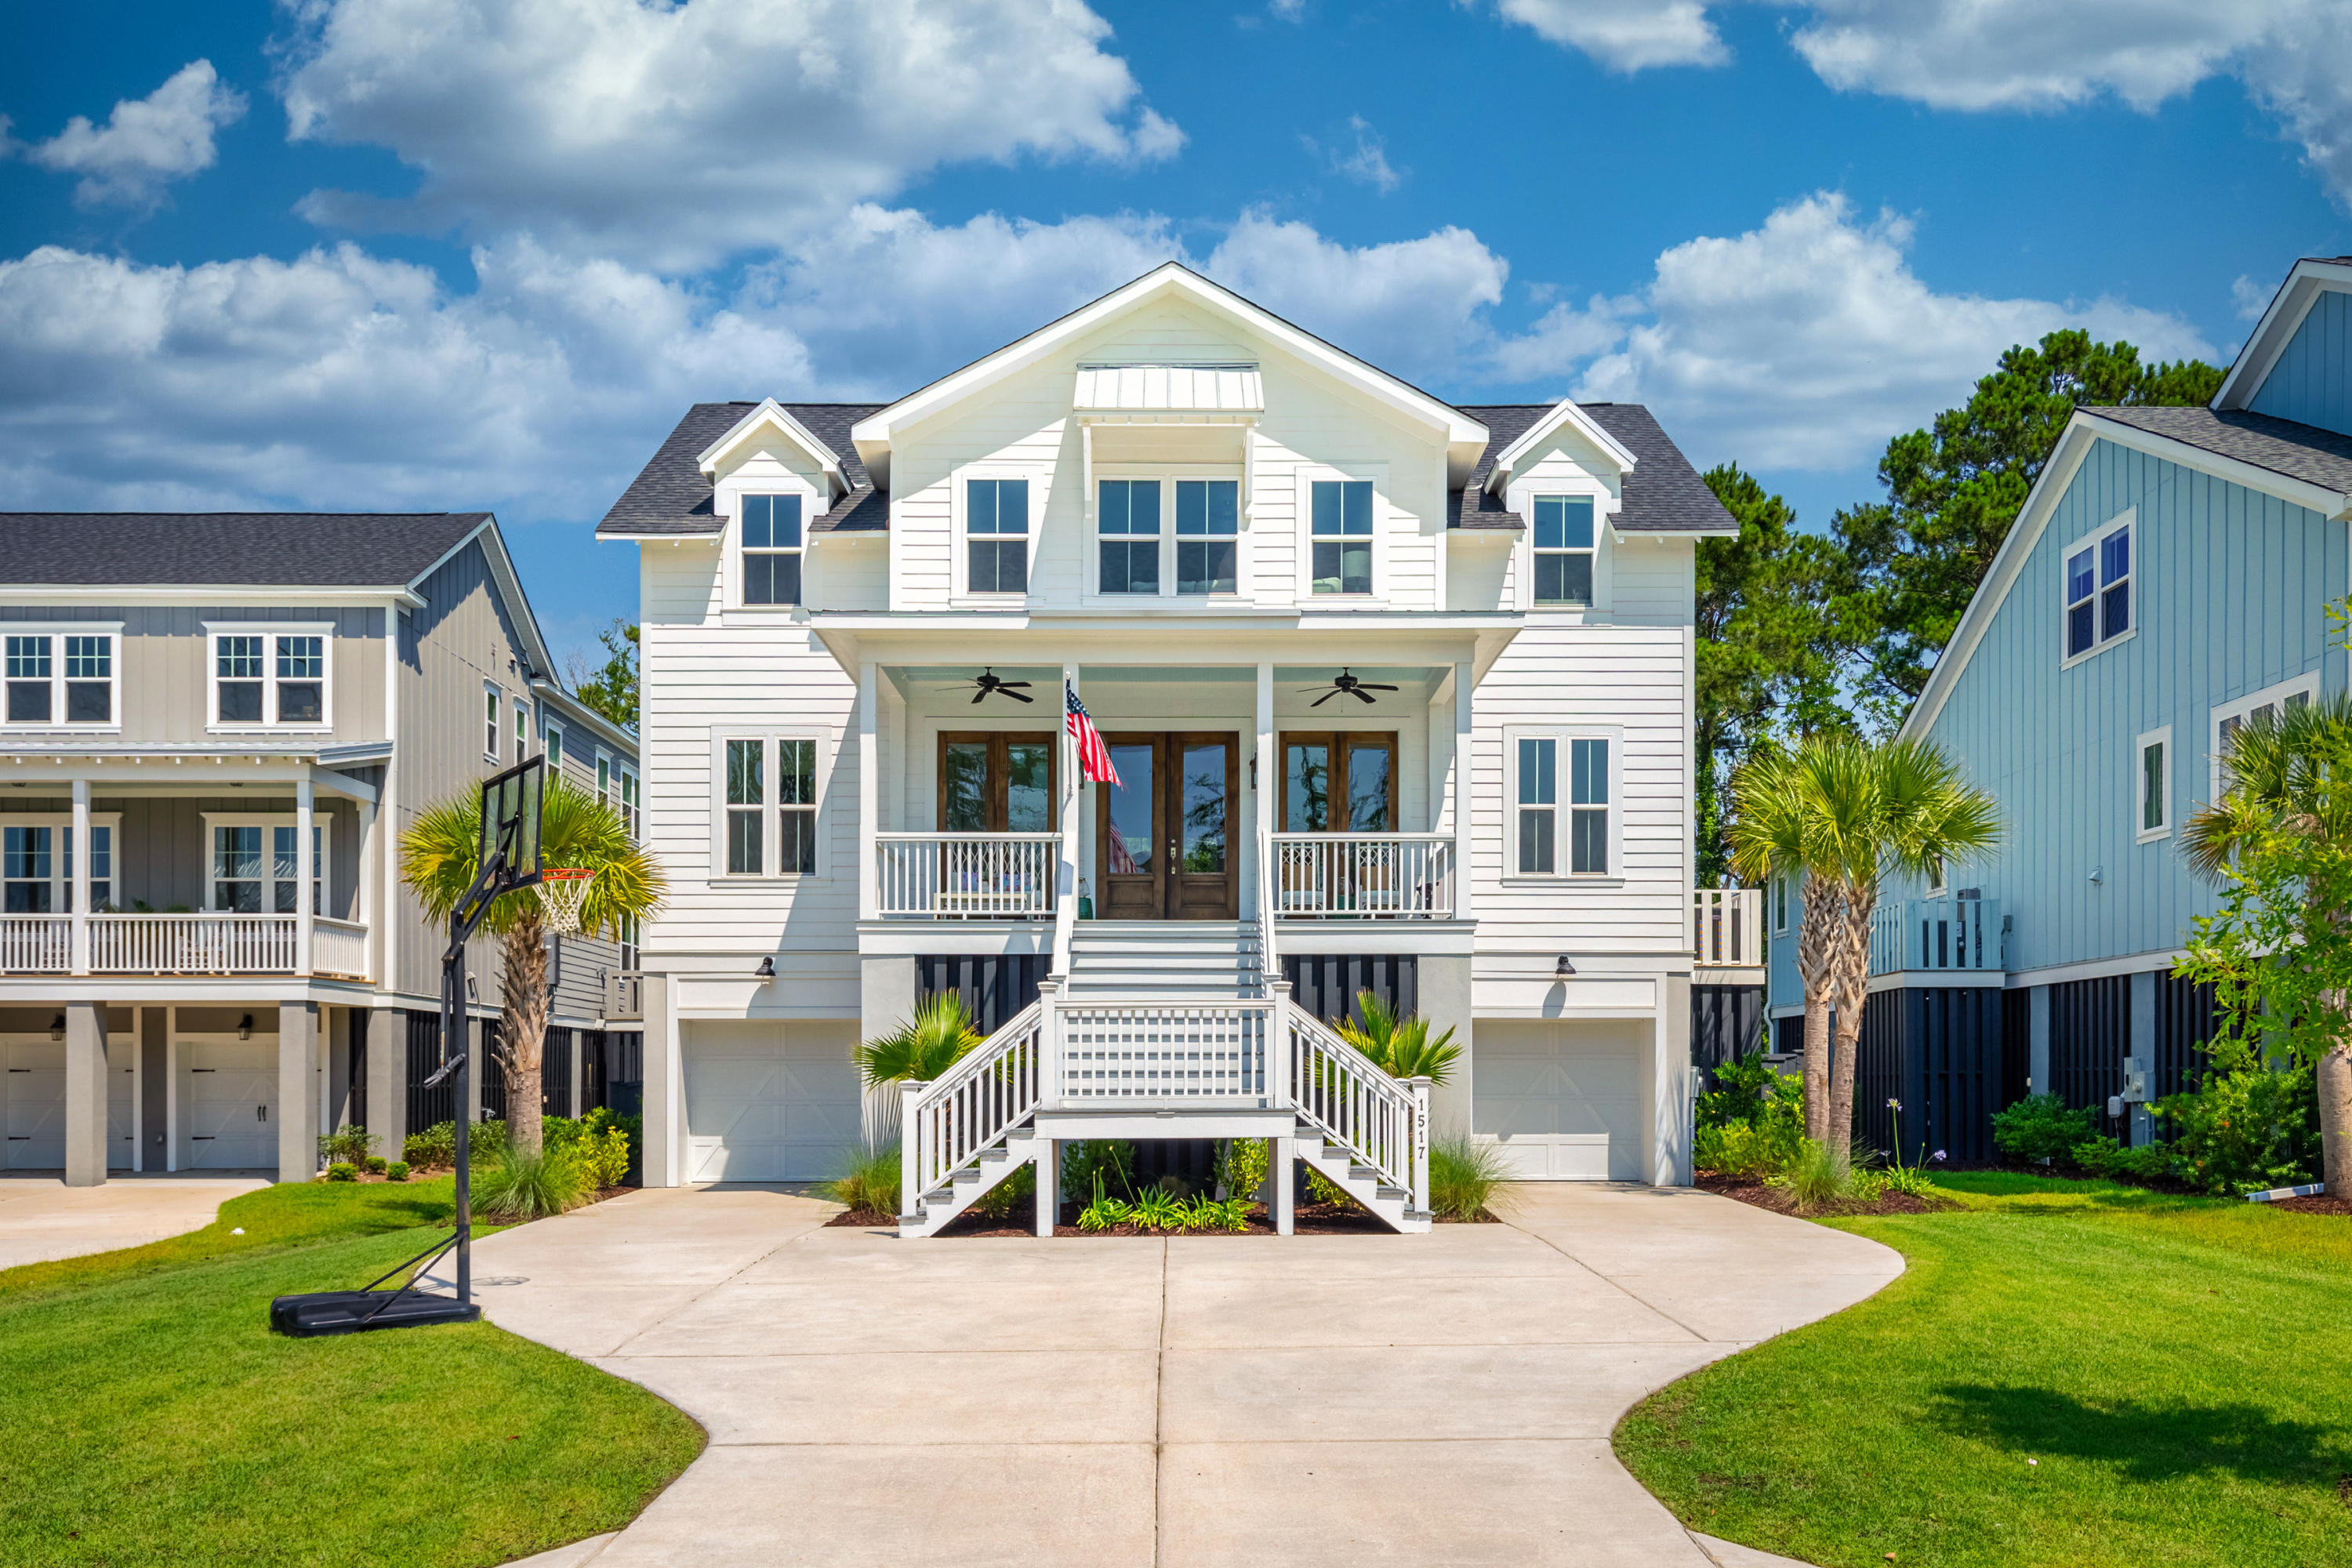 Stratton by the Sound Homes For Sale - 1517 Menhaden, Mount Pleasant, SC - 43